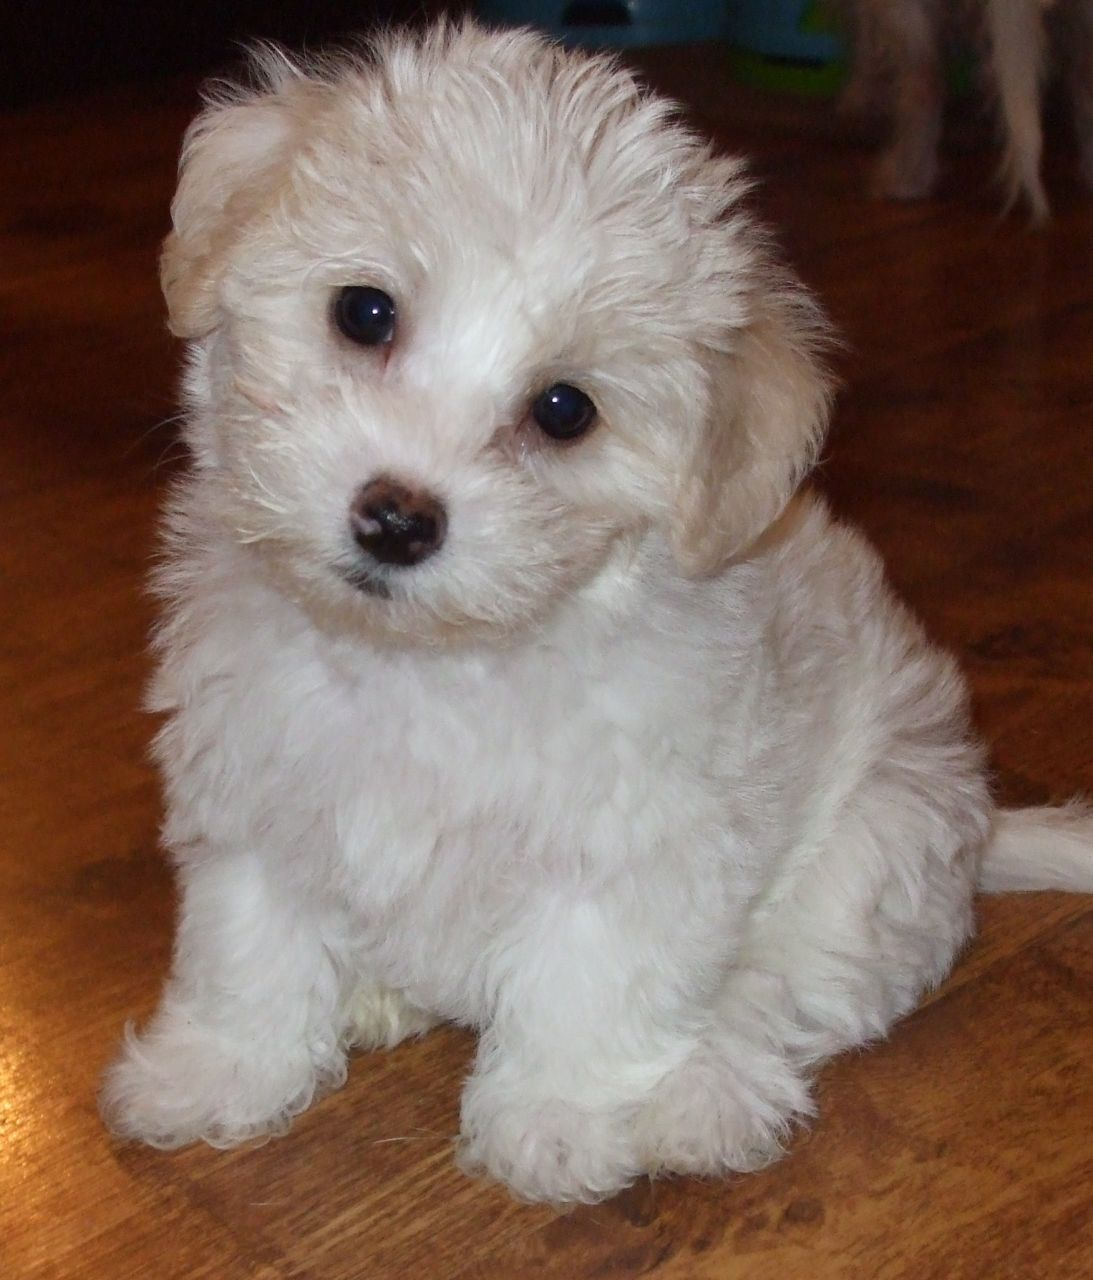 Shih Tzu Bichon Frise Mix For Sale Dog Breeds Picture White